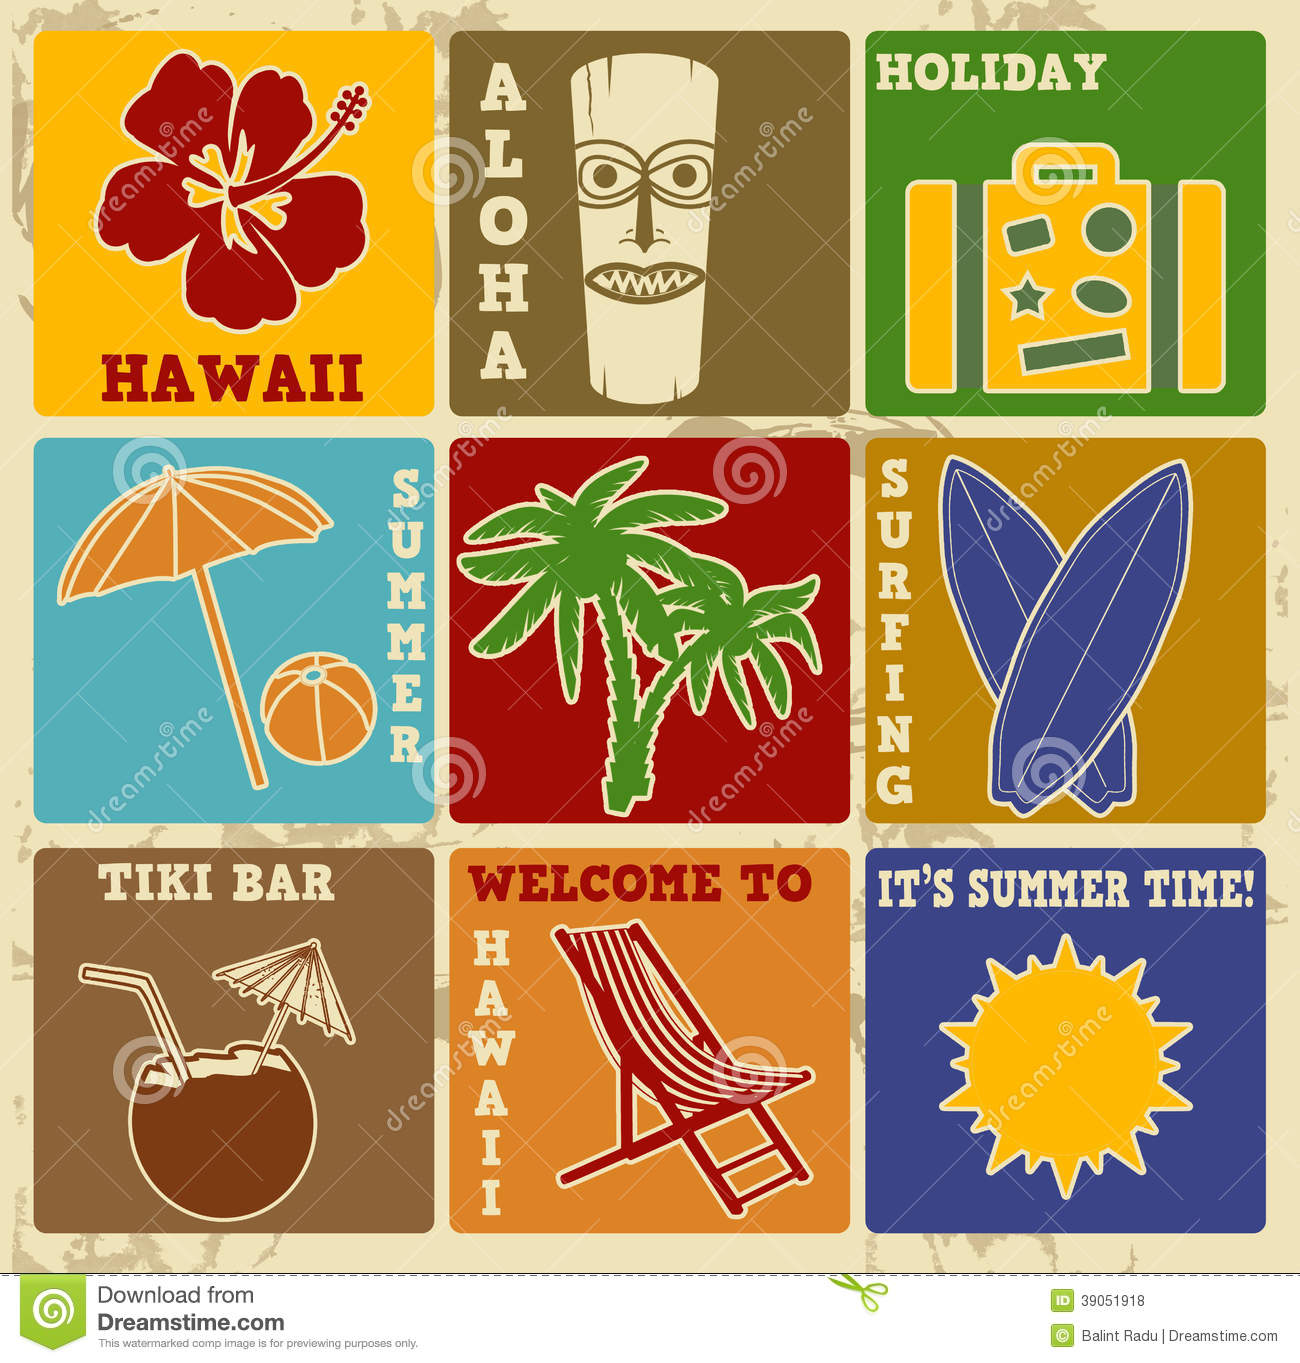 Retro Beach Illustration Royalty Free Stock Photo: Set Of Vintage Hawaii Labels Or Posters Stock Vector